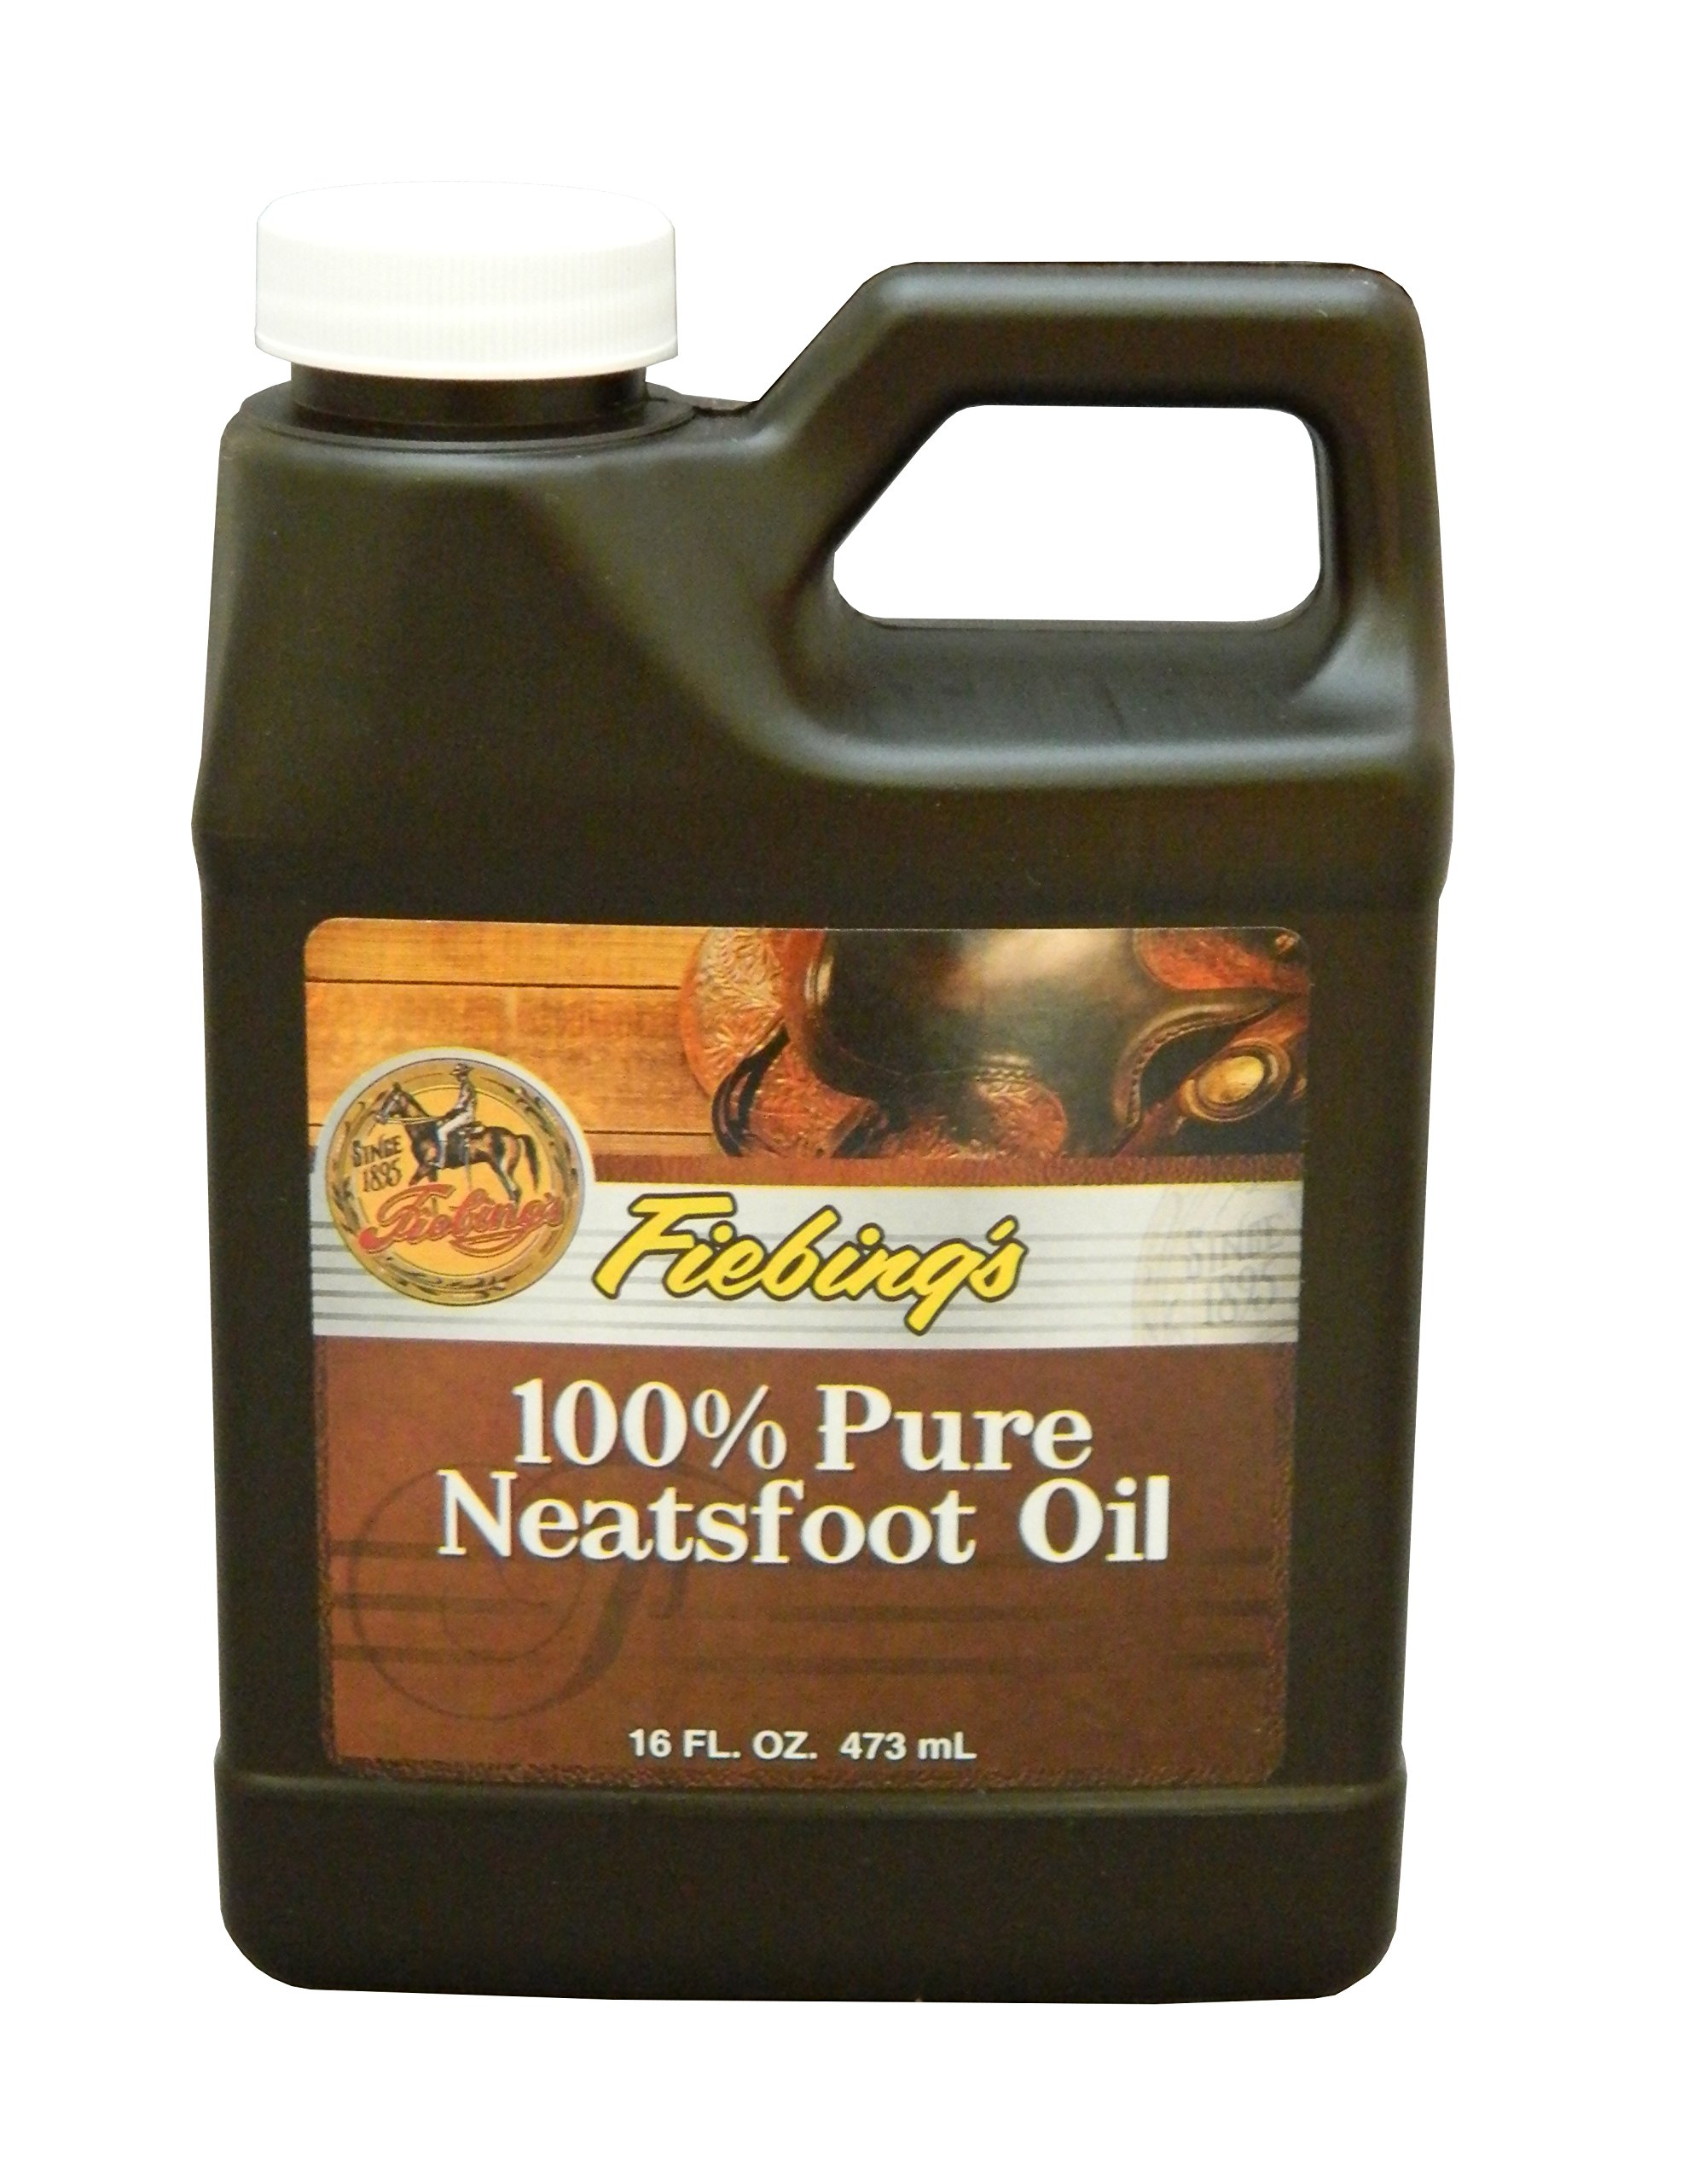 Fiebing's 100% Pure Neatsfoot Oil - Natural Leather Preserver - For Boots, Baseball Gloves, Saddles and More - 16 oz by Fiebing's